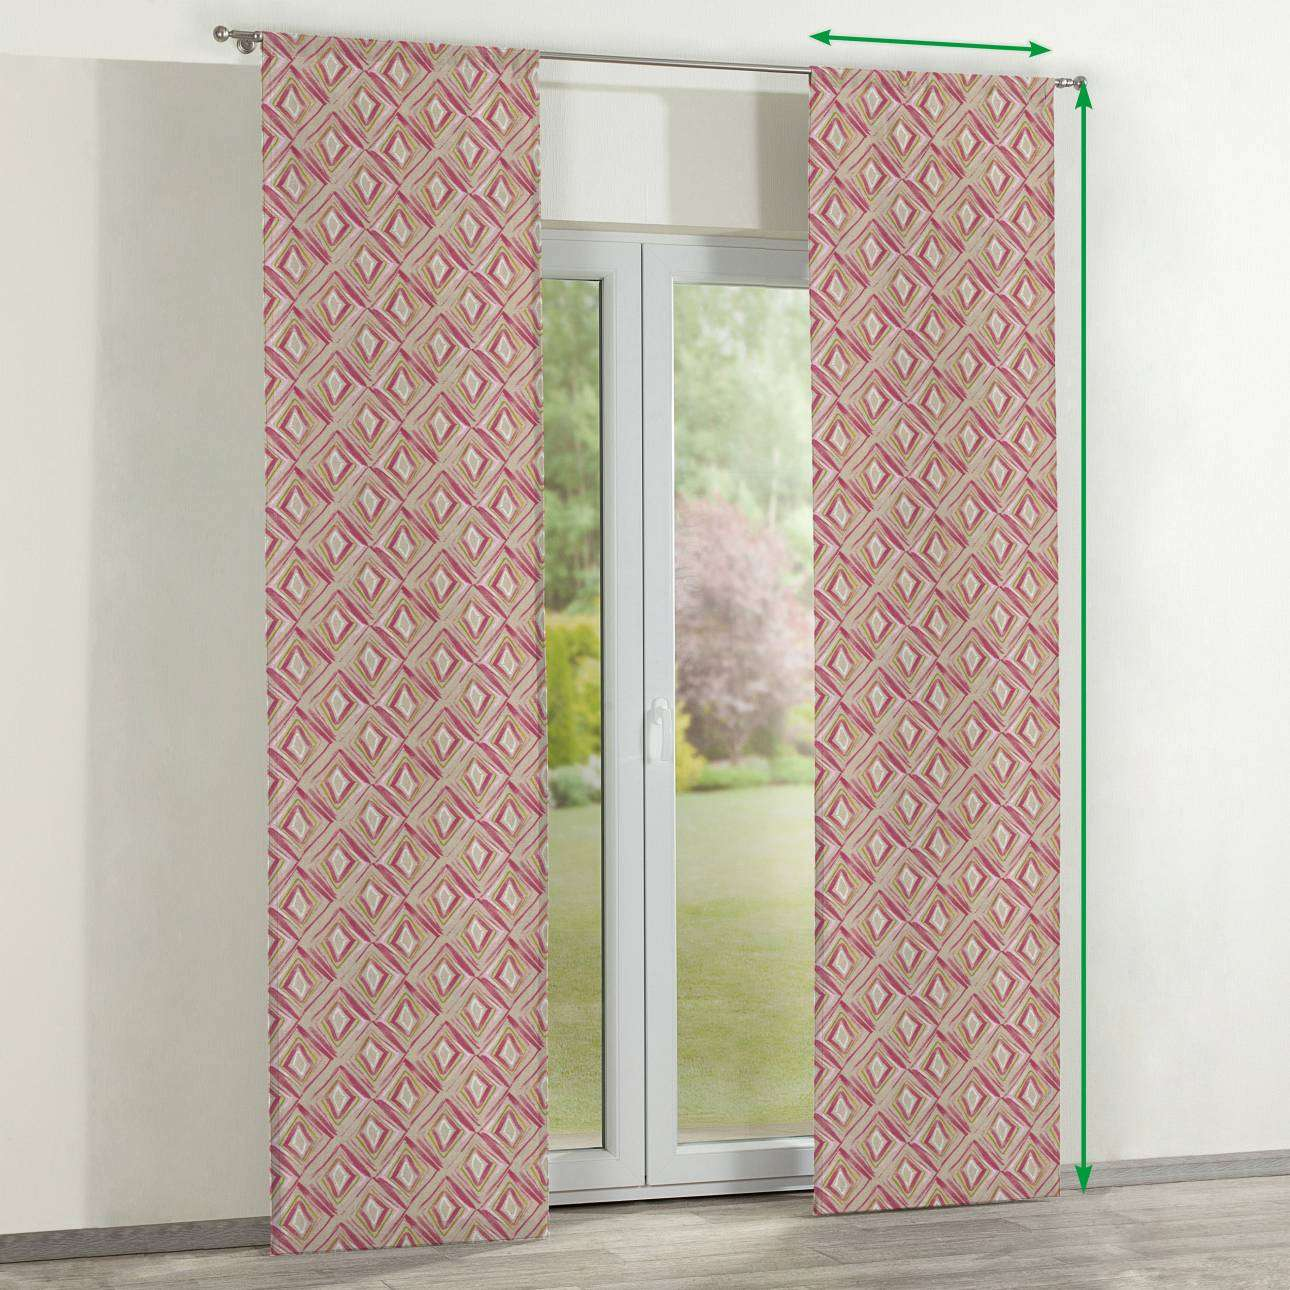 Slot panel curtains – Set of 2 in collection Londres, fabric: 140-45